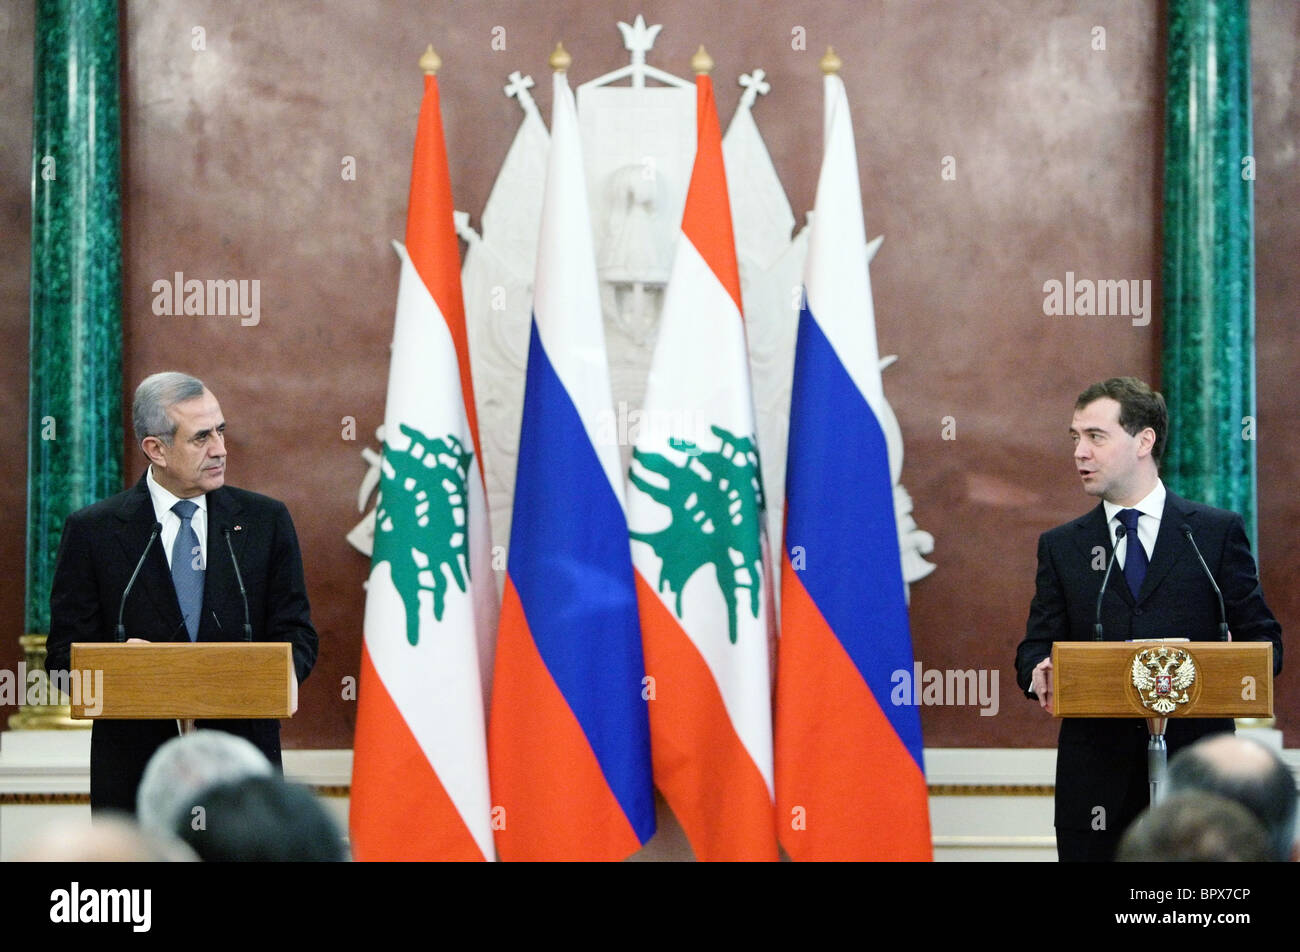 Leaders of Russia and Lebanon meet for talks - Stock Image